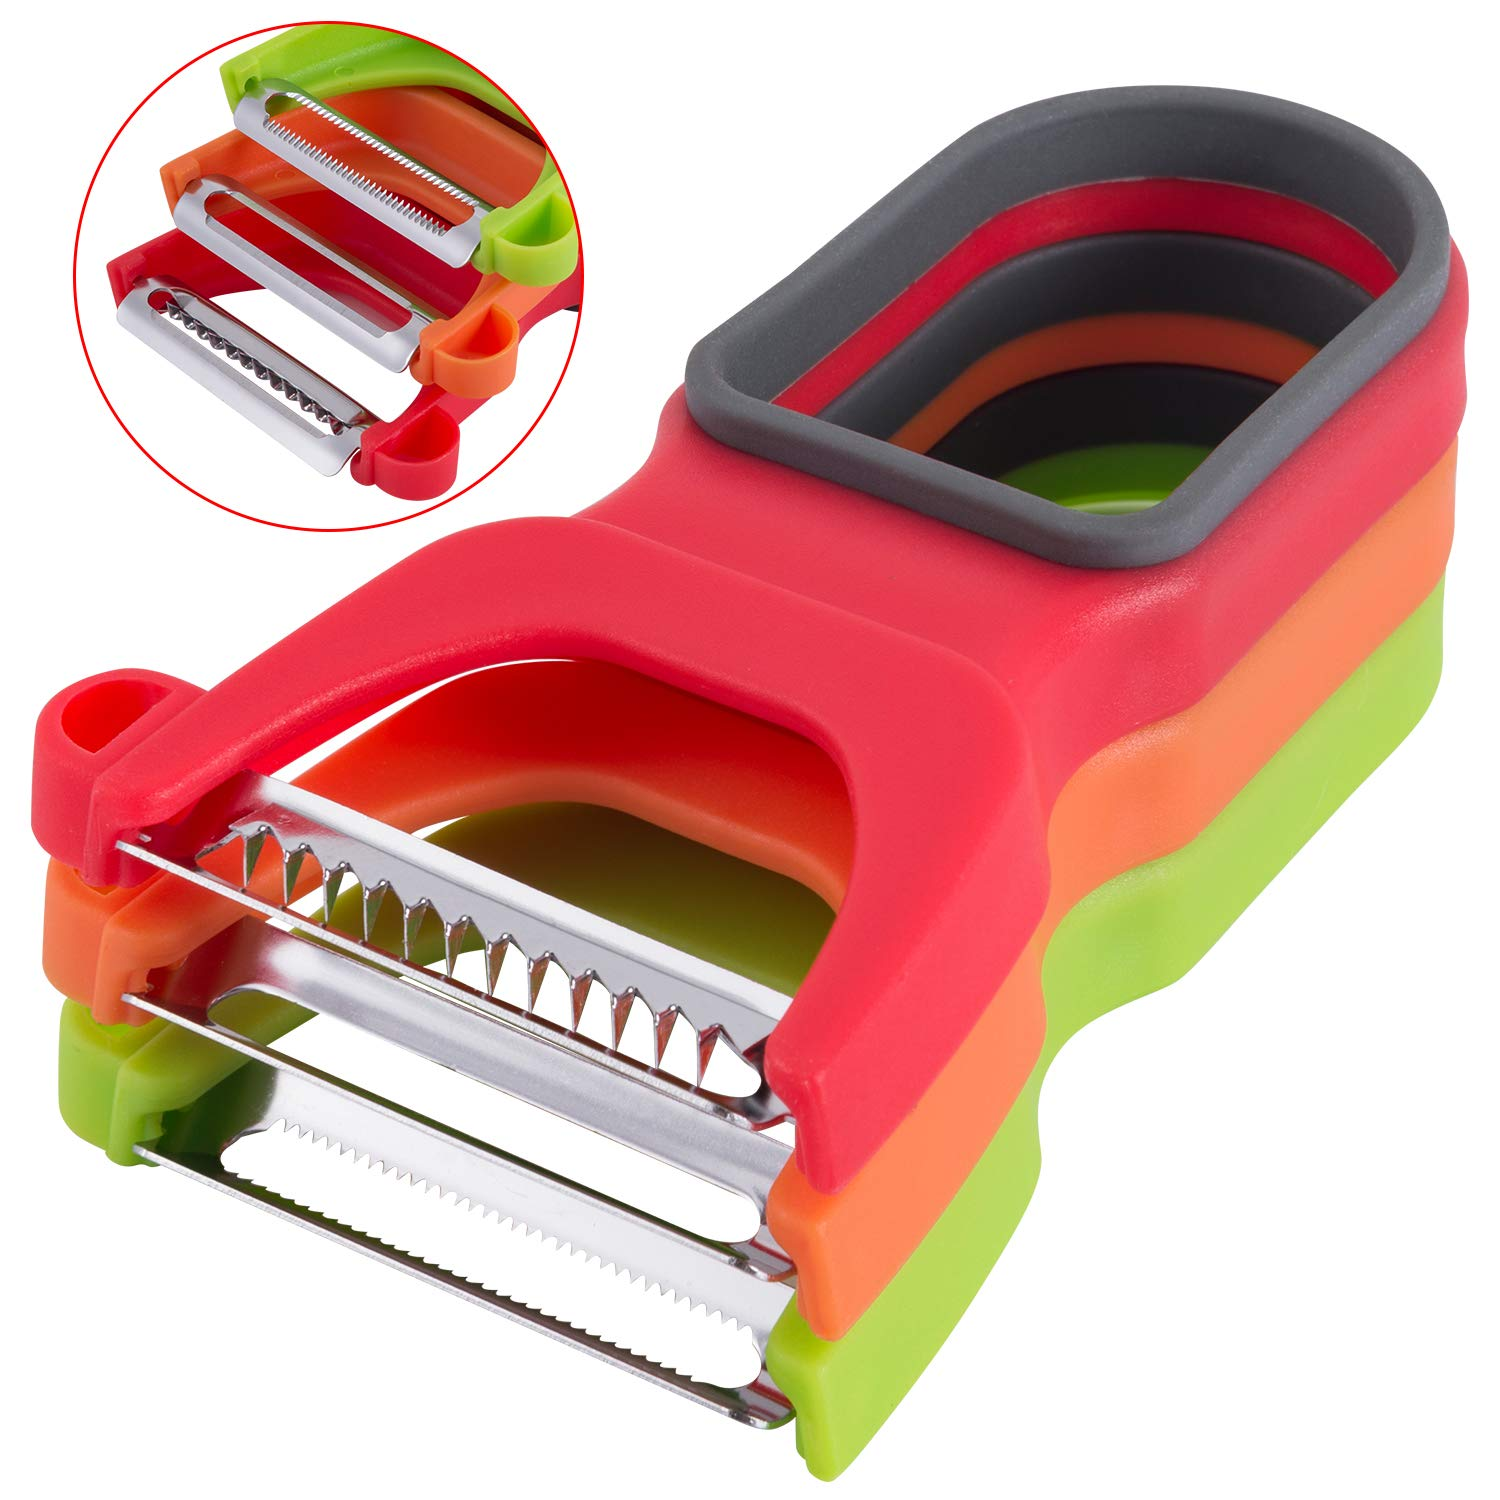 Attootric Peeler, Vegetable Peeler Set of 3 pcs with Sharp Stainless Steel Blade for Apple Potato Fruit, Swivel Y Serrated Julienne Peeler Non-Slip Handle Kitchen Gadgets Tools (Red Green Yellow)